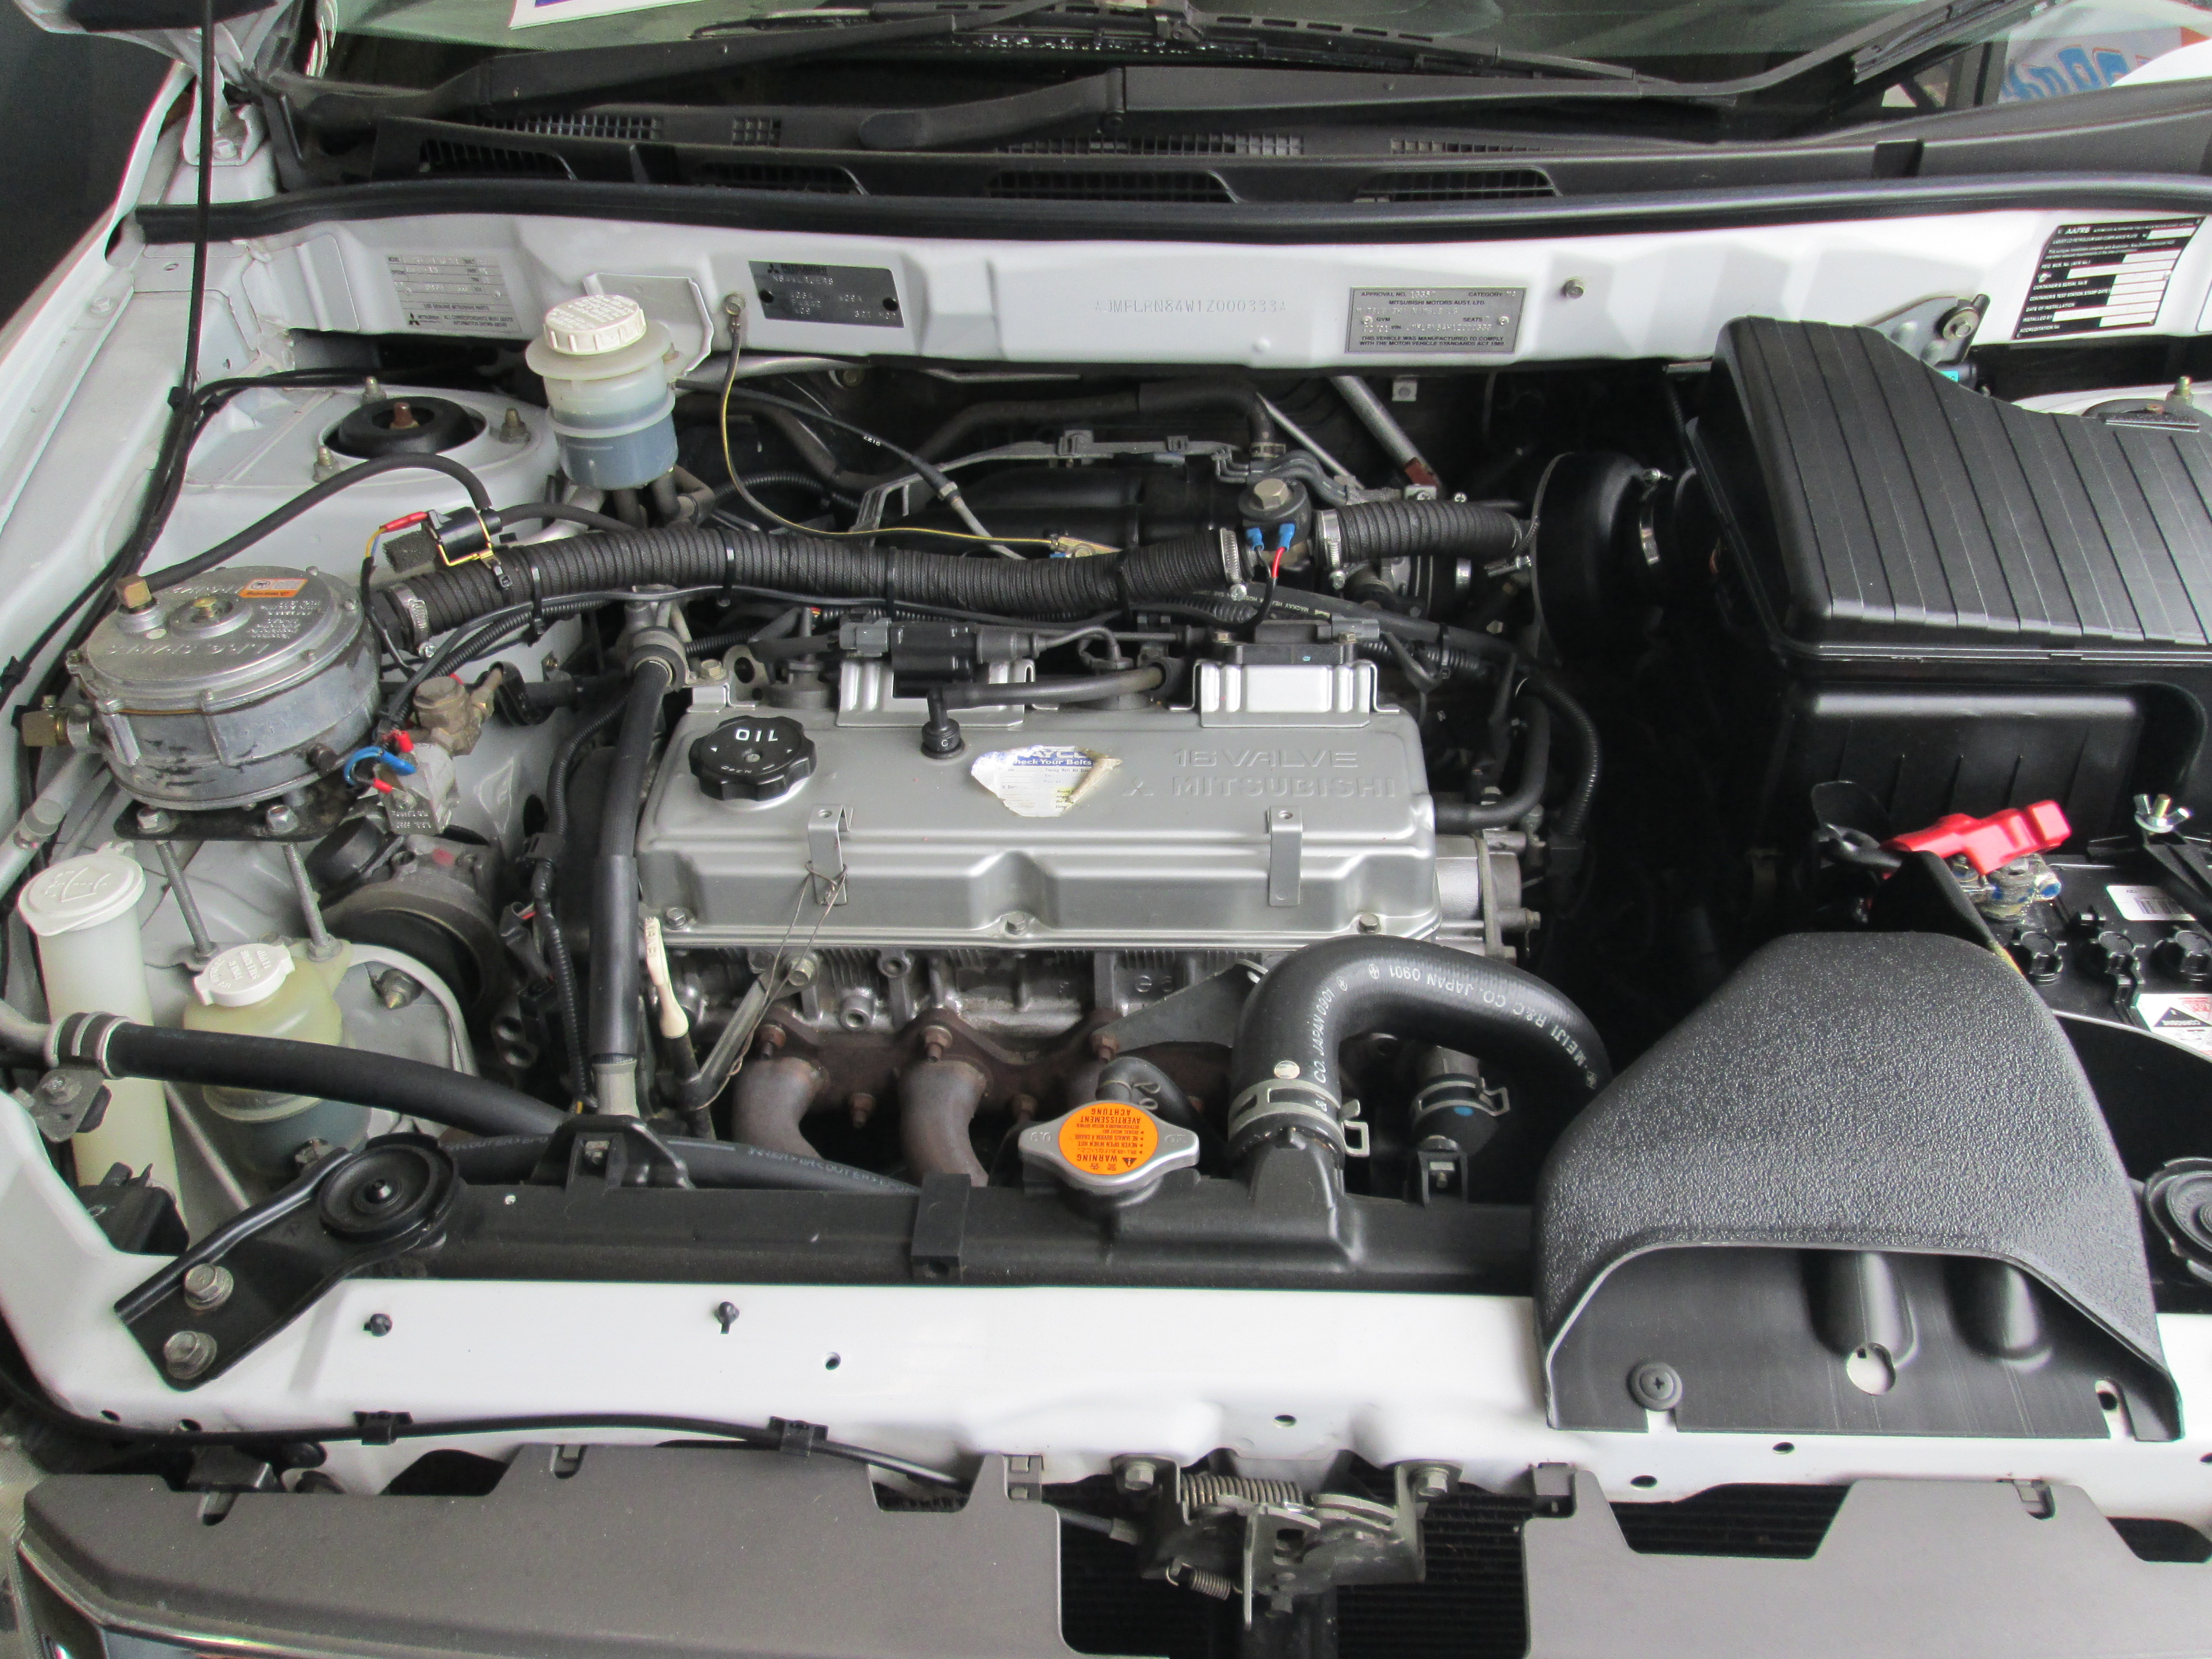 used diesel en machine engines no mitsubishi a for sale